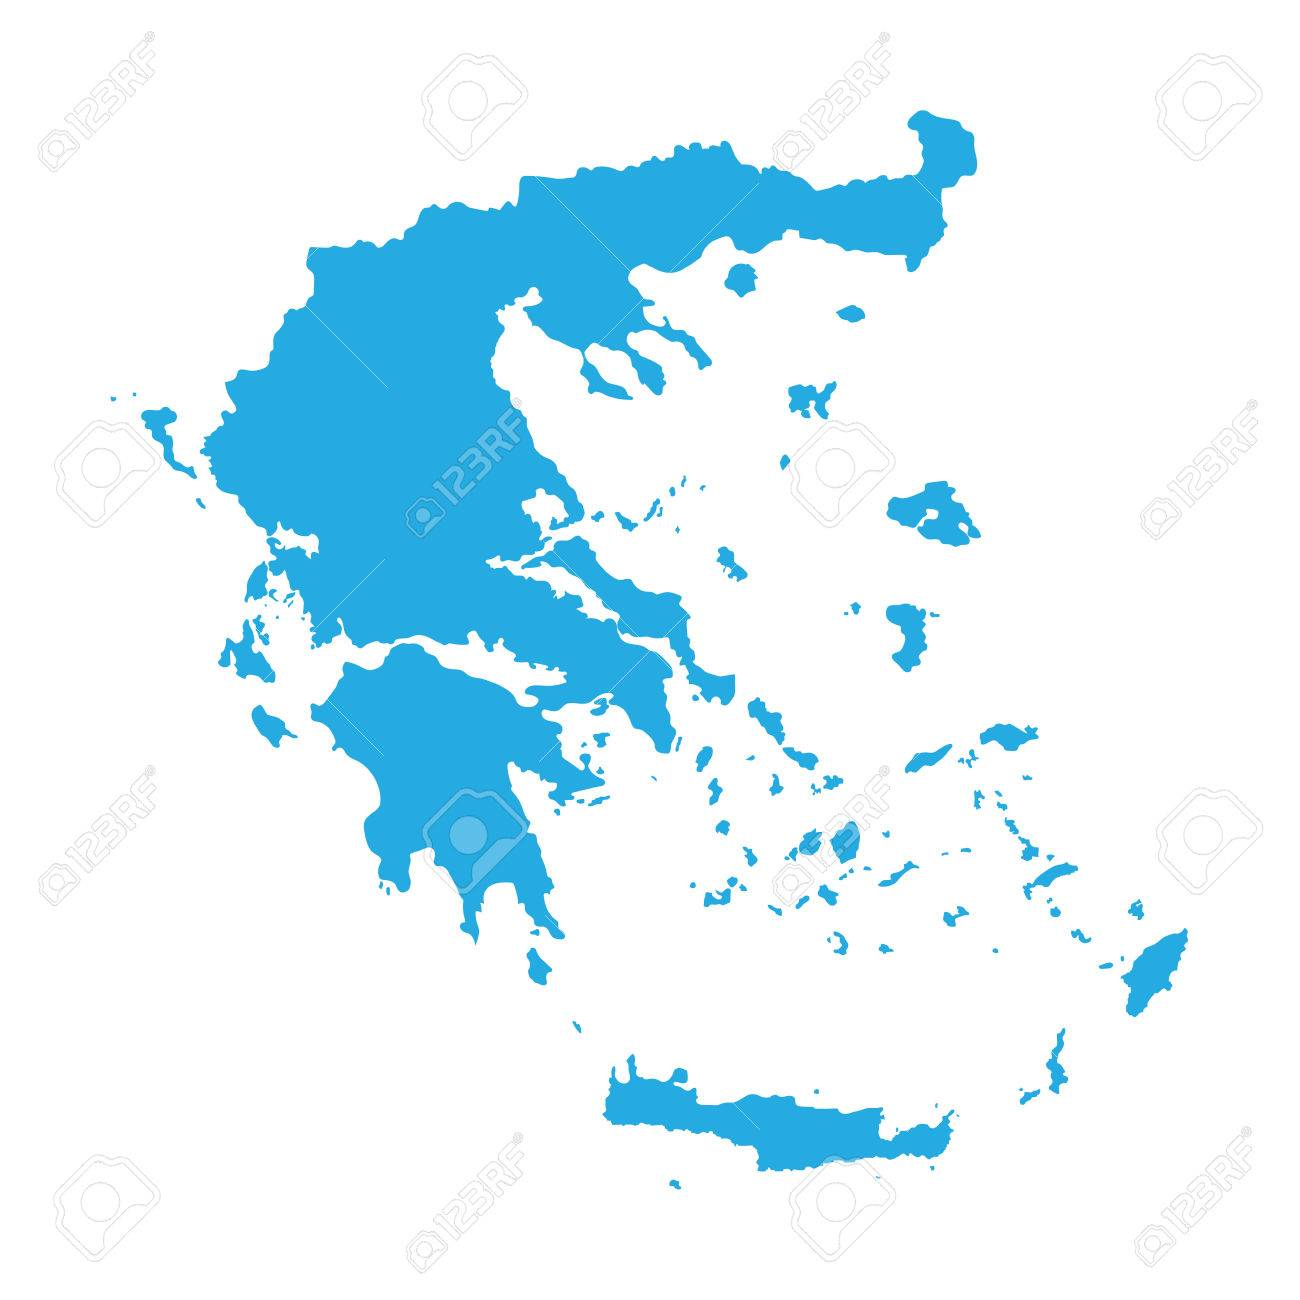 blue map of Greece - 36512020